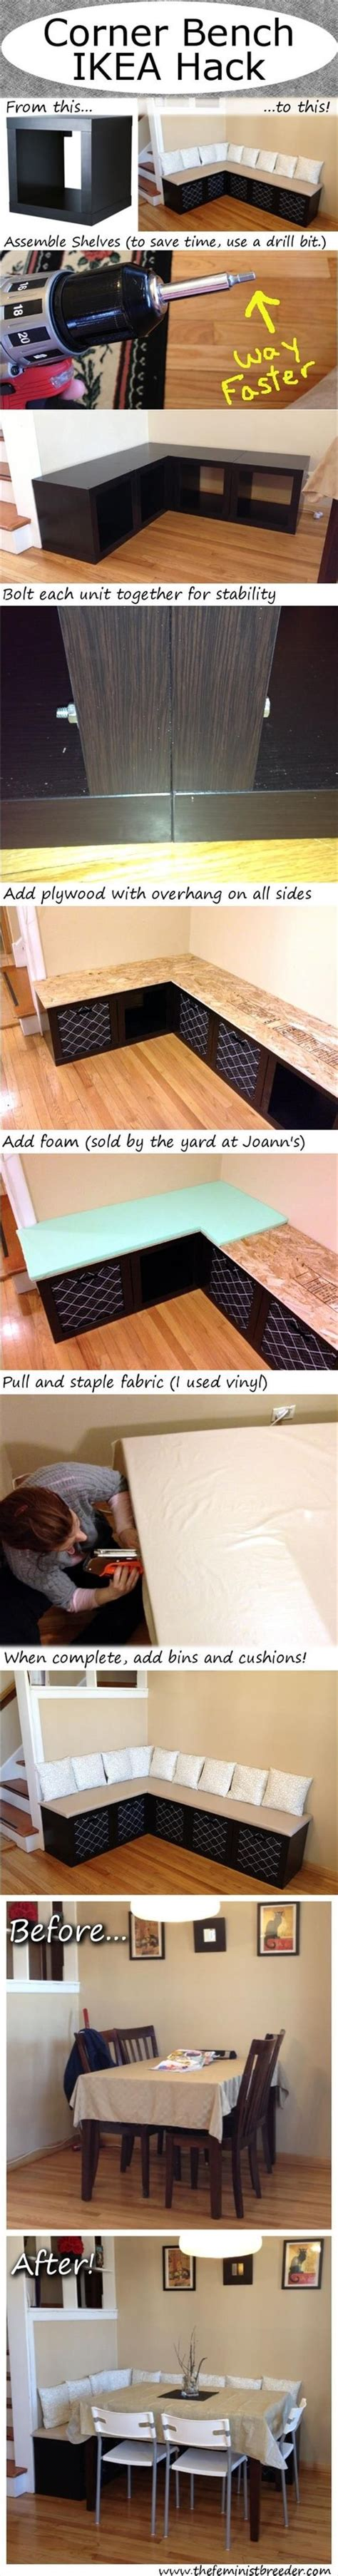 how to make a dining bench decor hacks how to make a corner bench seating table for your dining room decor